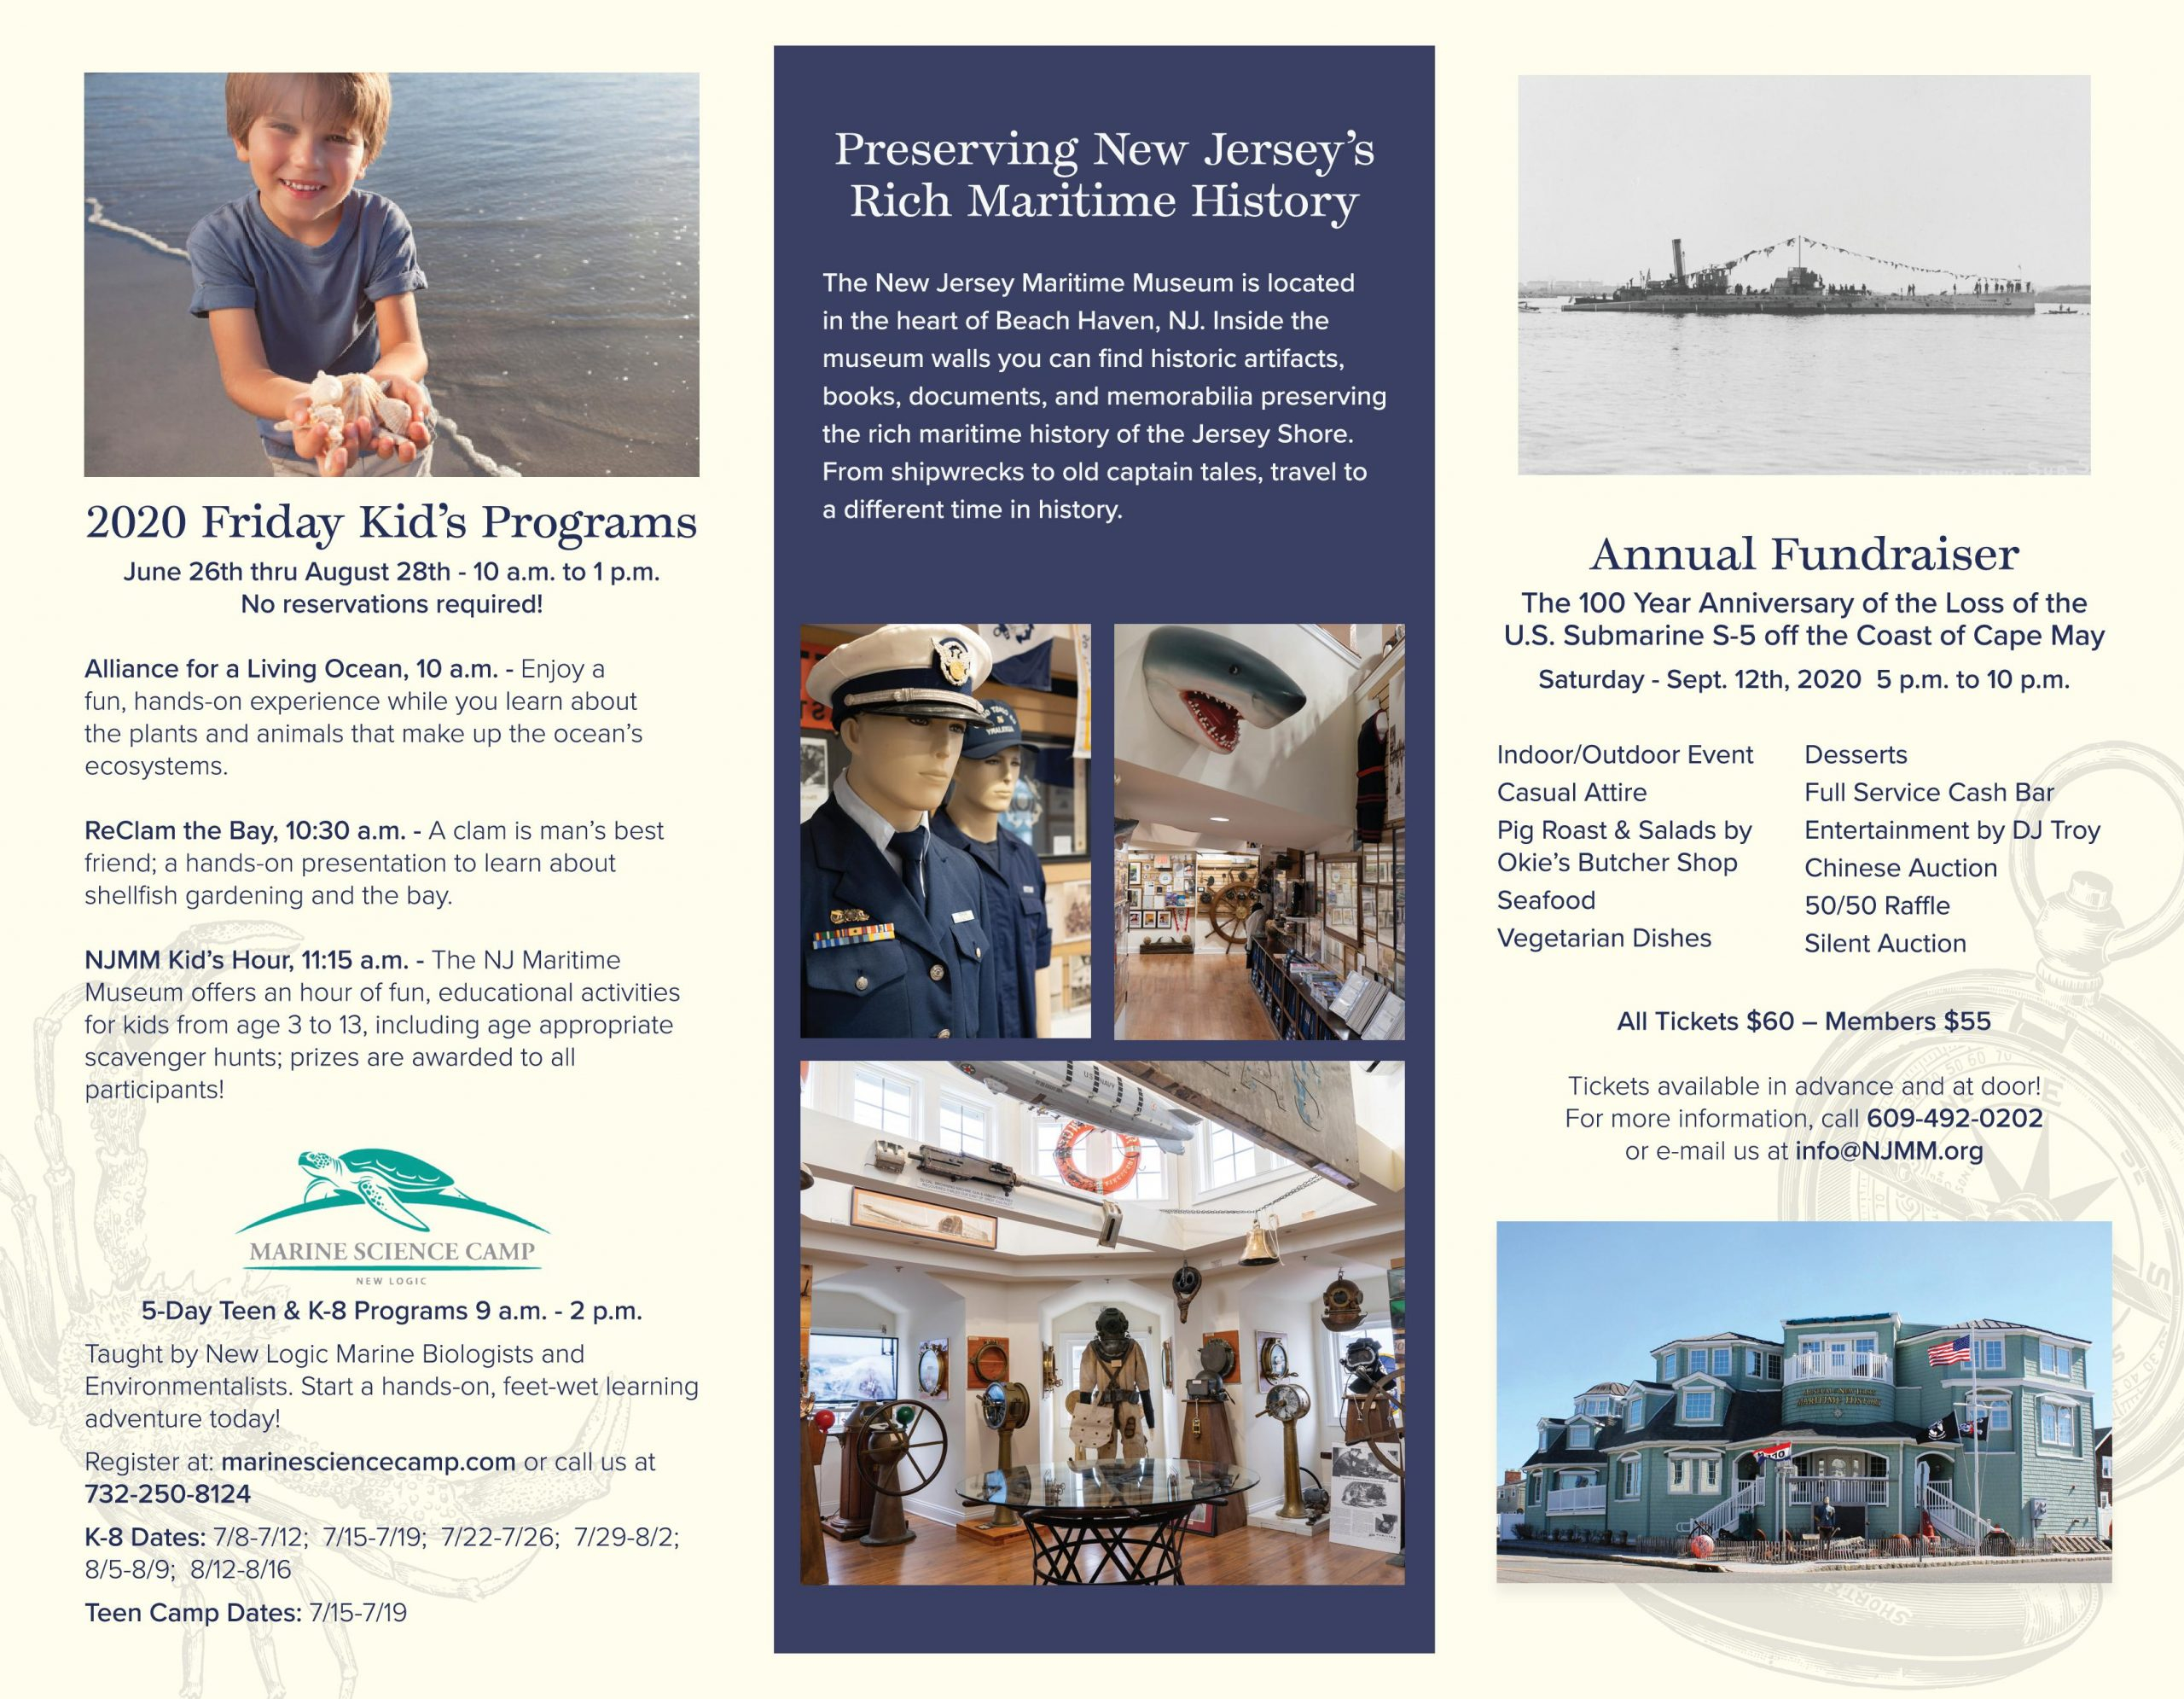 2020 Nj Maritime Museum Brochure - New Jersey Maritime Museum Intended For Order Wildwood Nj Usa Tourist Brochure